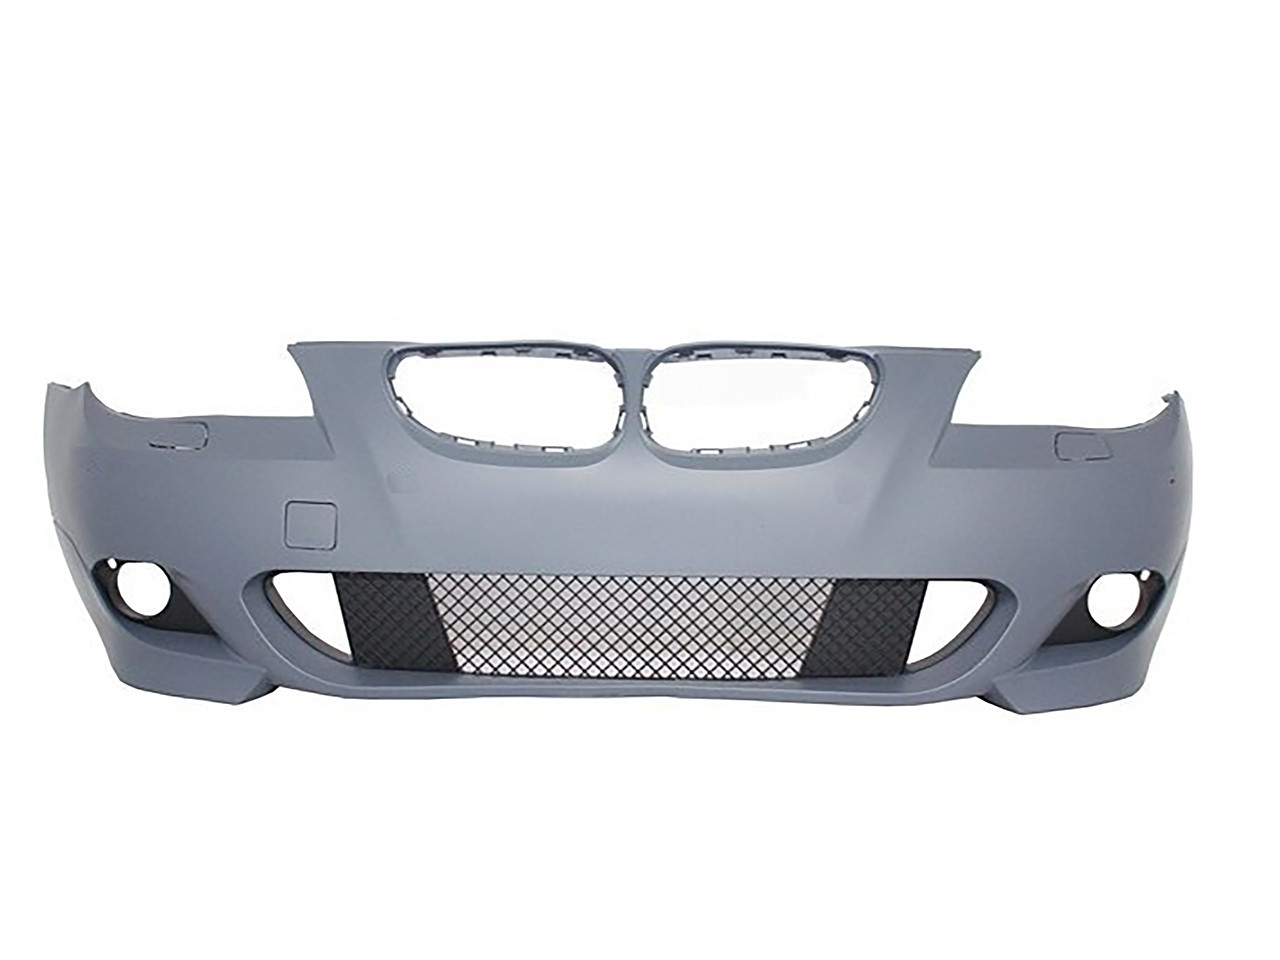 Kit Exterior BMW Seria 5 E60 (03-10) M-Tech Design